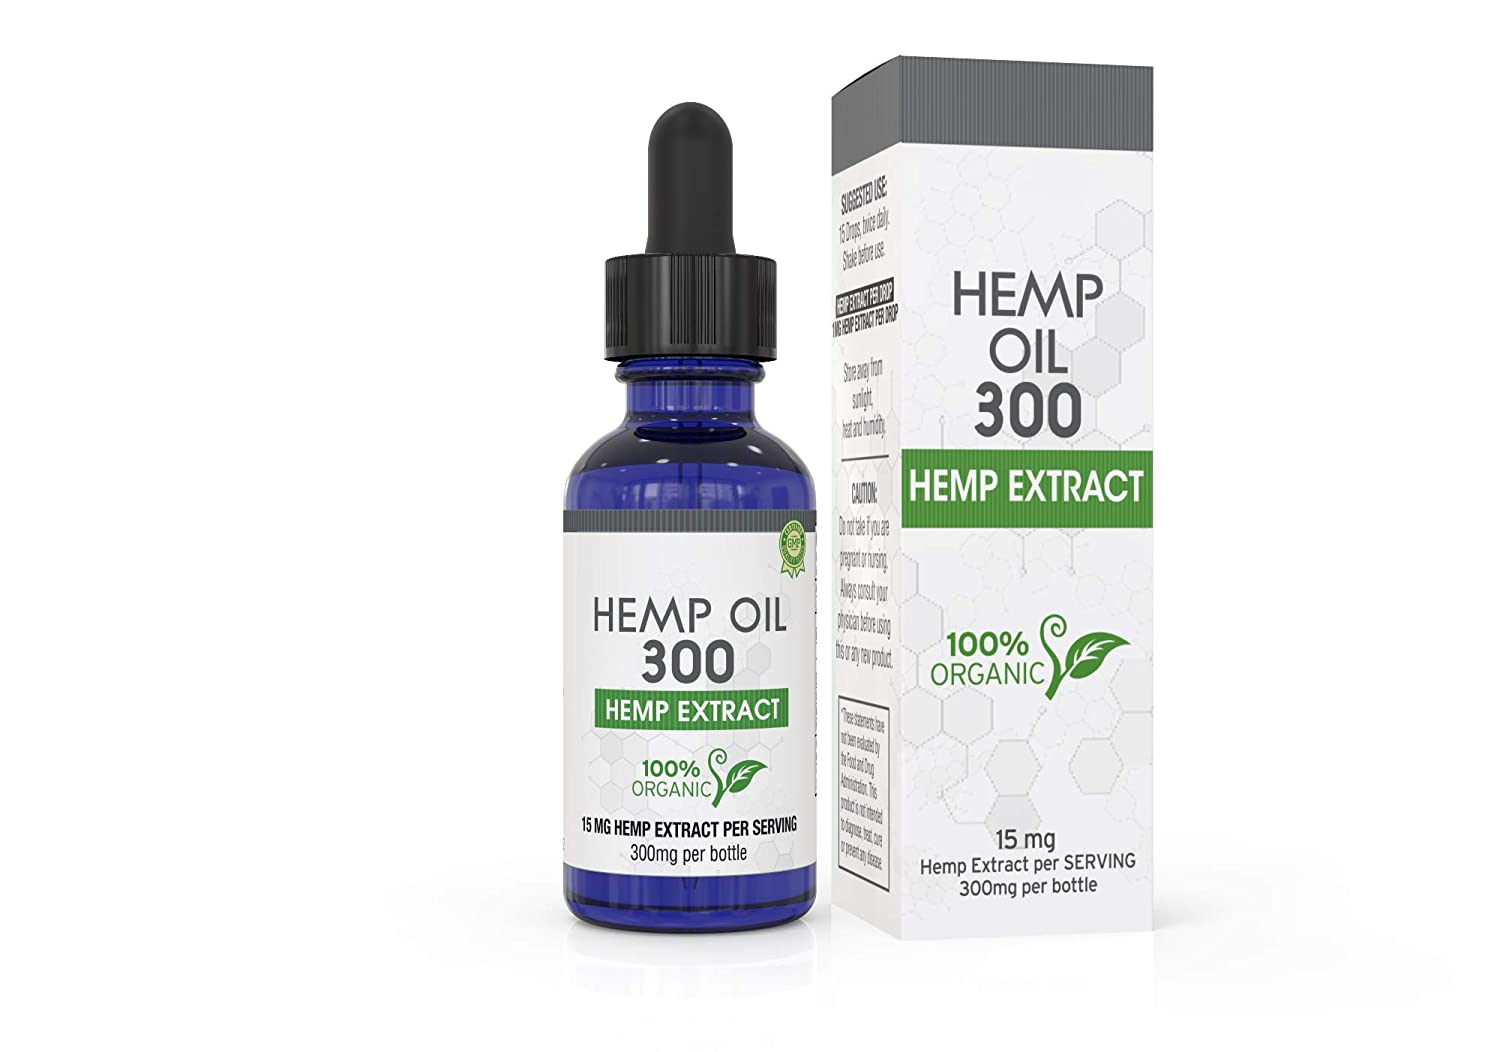 Hemp Oil for Pain, Anxiety & Stress Relief - 300mg - 100% Organic Hemp  Extract Drops - Natural Anti-Inflammatory, Joint Support Helps with Better